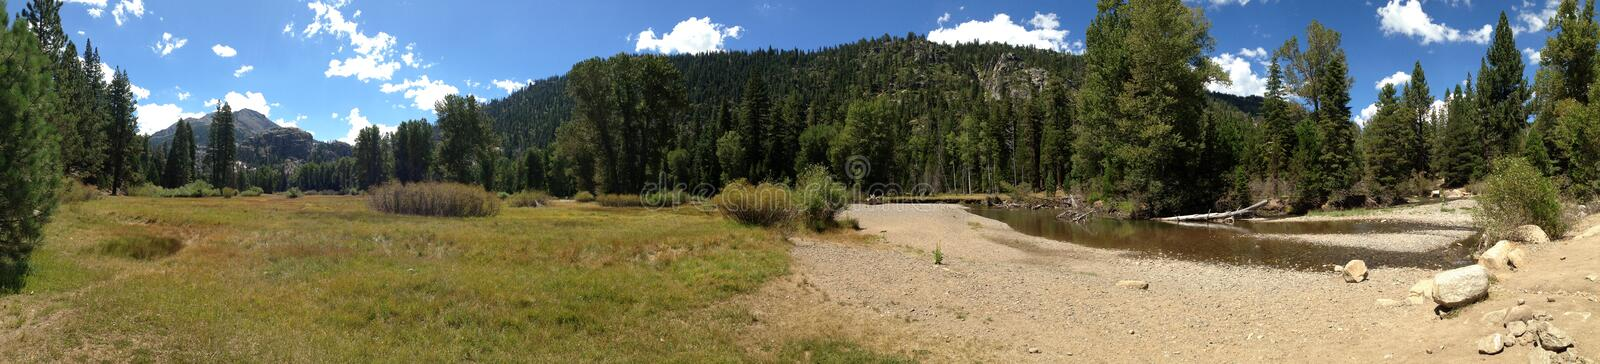 The Kern River valley at Kennedy Meadows. California - Kennedy Meadows - The Kern River meanders through Kennedy Meadows on a sunny summer afternoon. August stock image